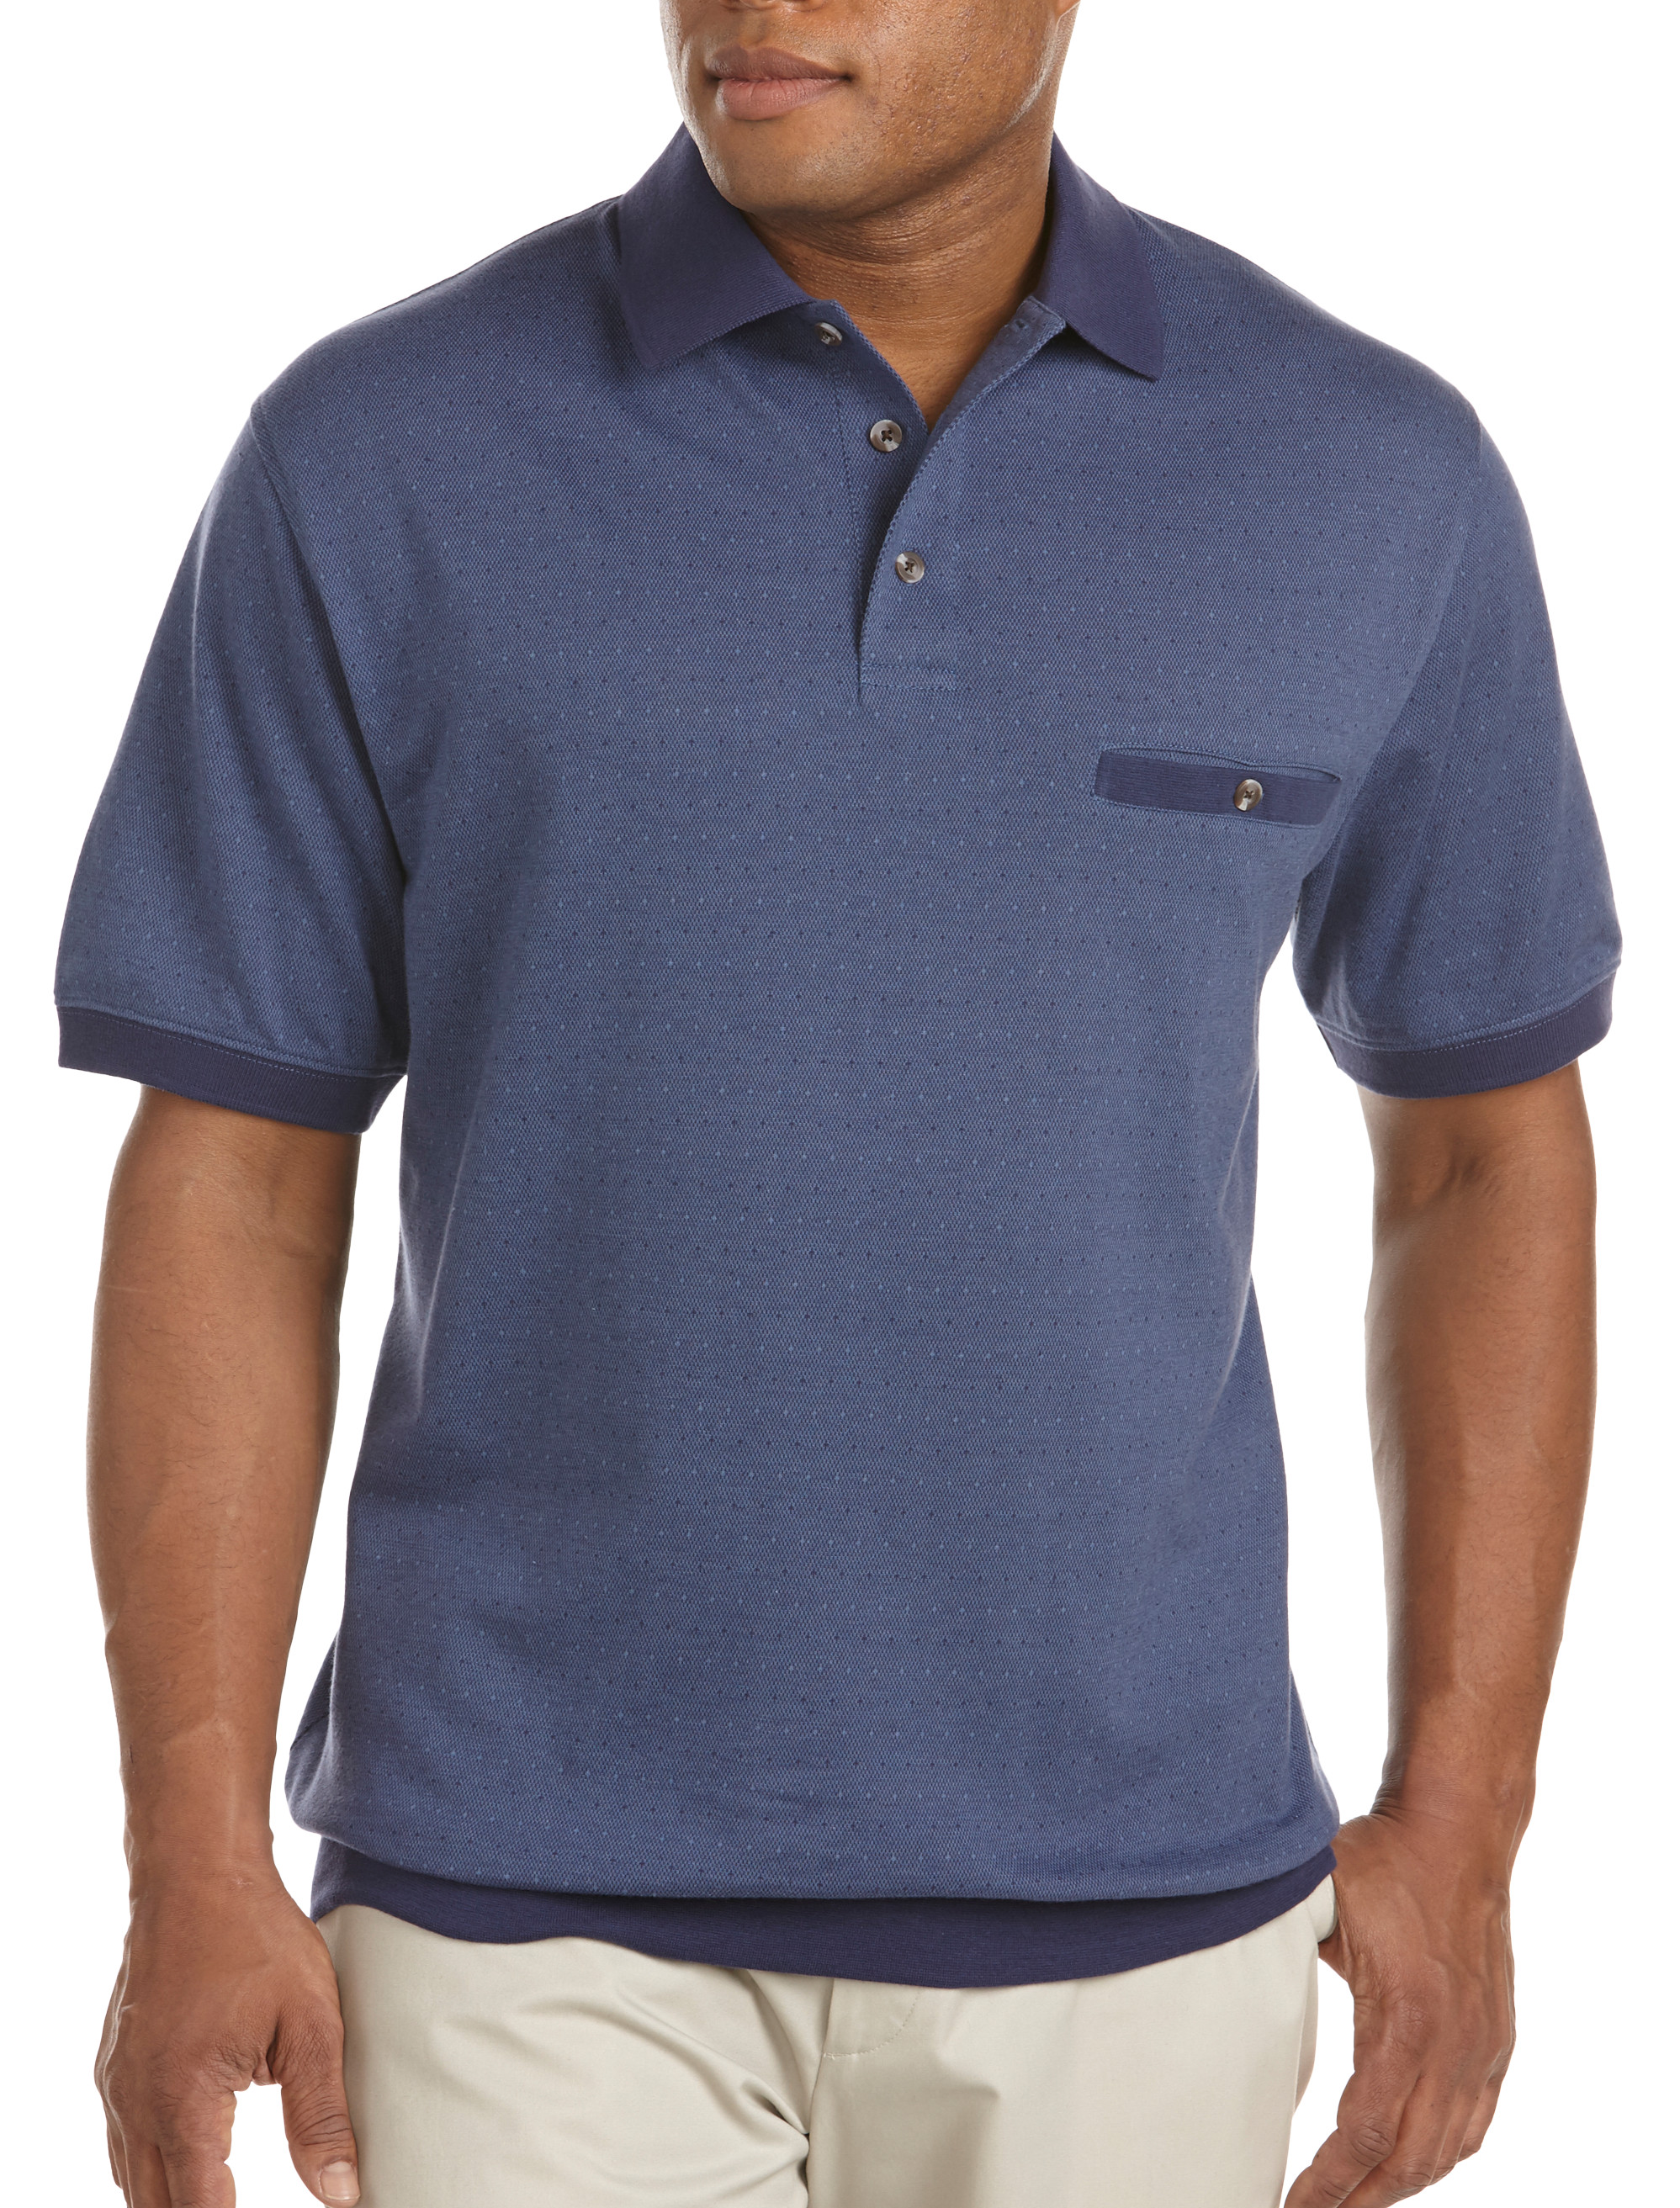 Banded Bottom Shirts Shoppinder